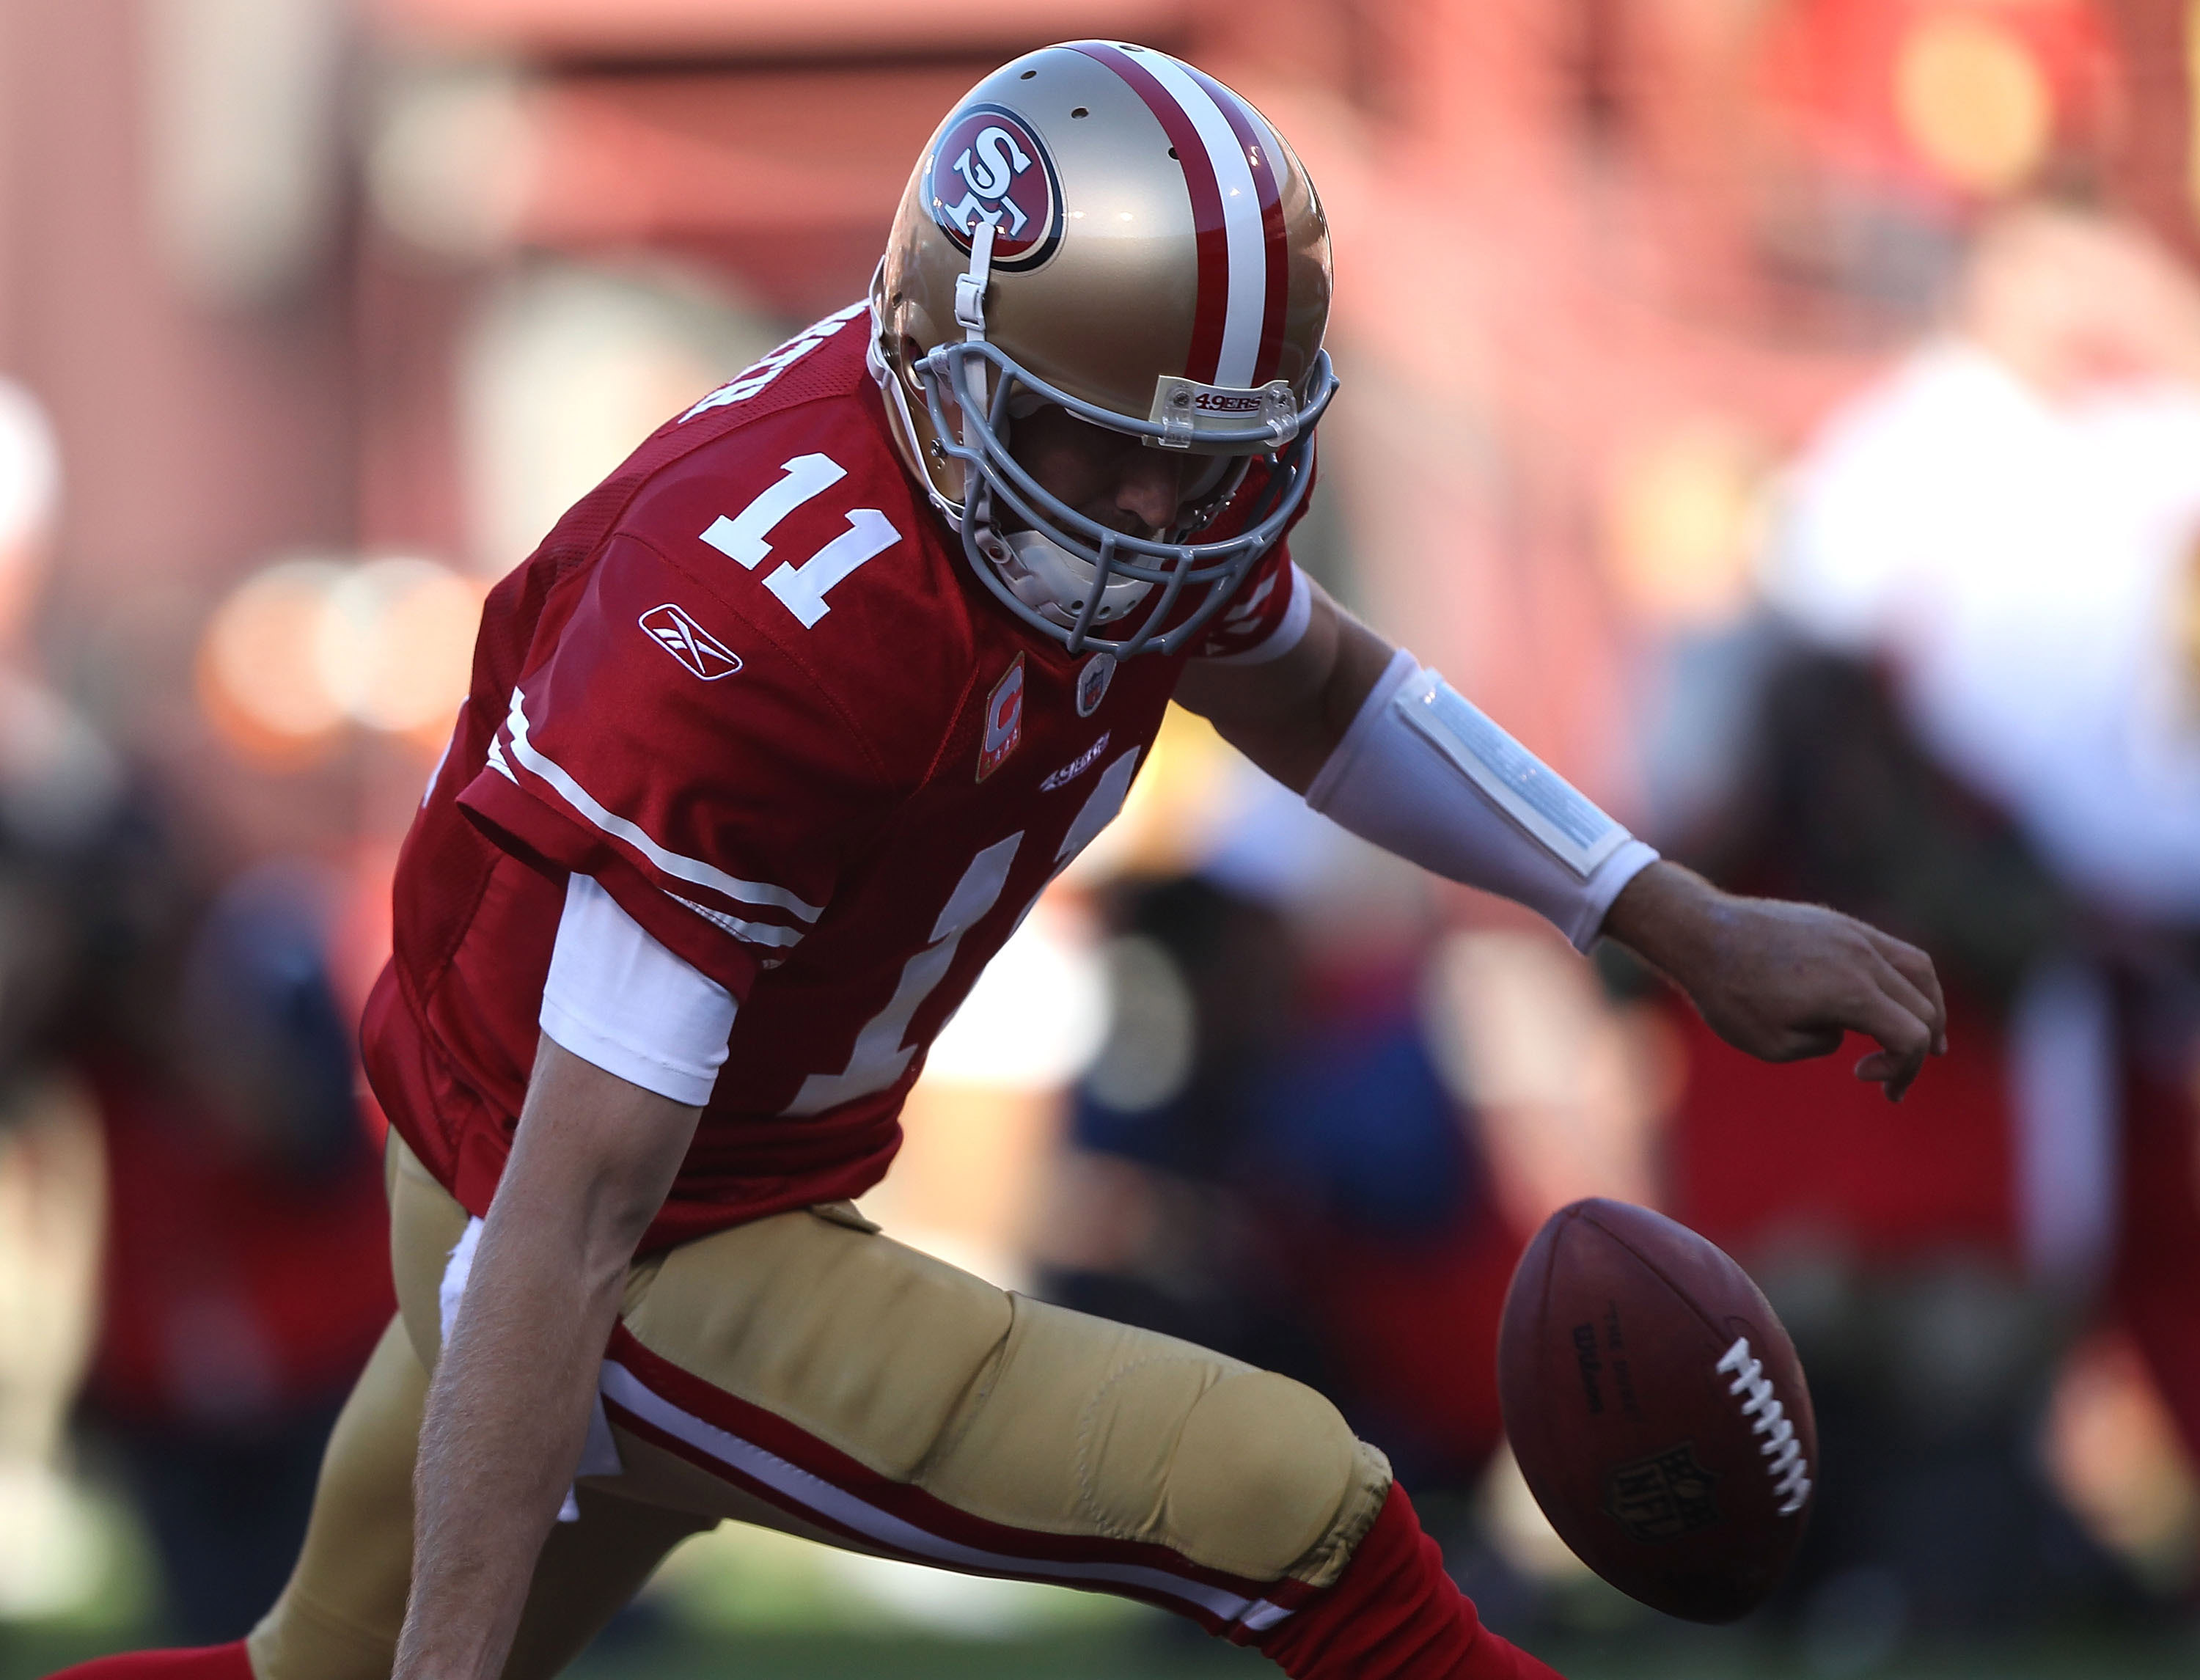 SAN FRANCISCO - SEPTEMBER 20:  Alex Smith #11 of the San Francisco 49ers looses the ball in the endzone for a saftey against the New Orleans Saints during an NFL game at Candlestick Park on September 20, 2010 in San Francisco, California.  (Photo by Jed J